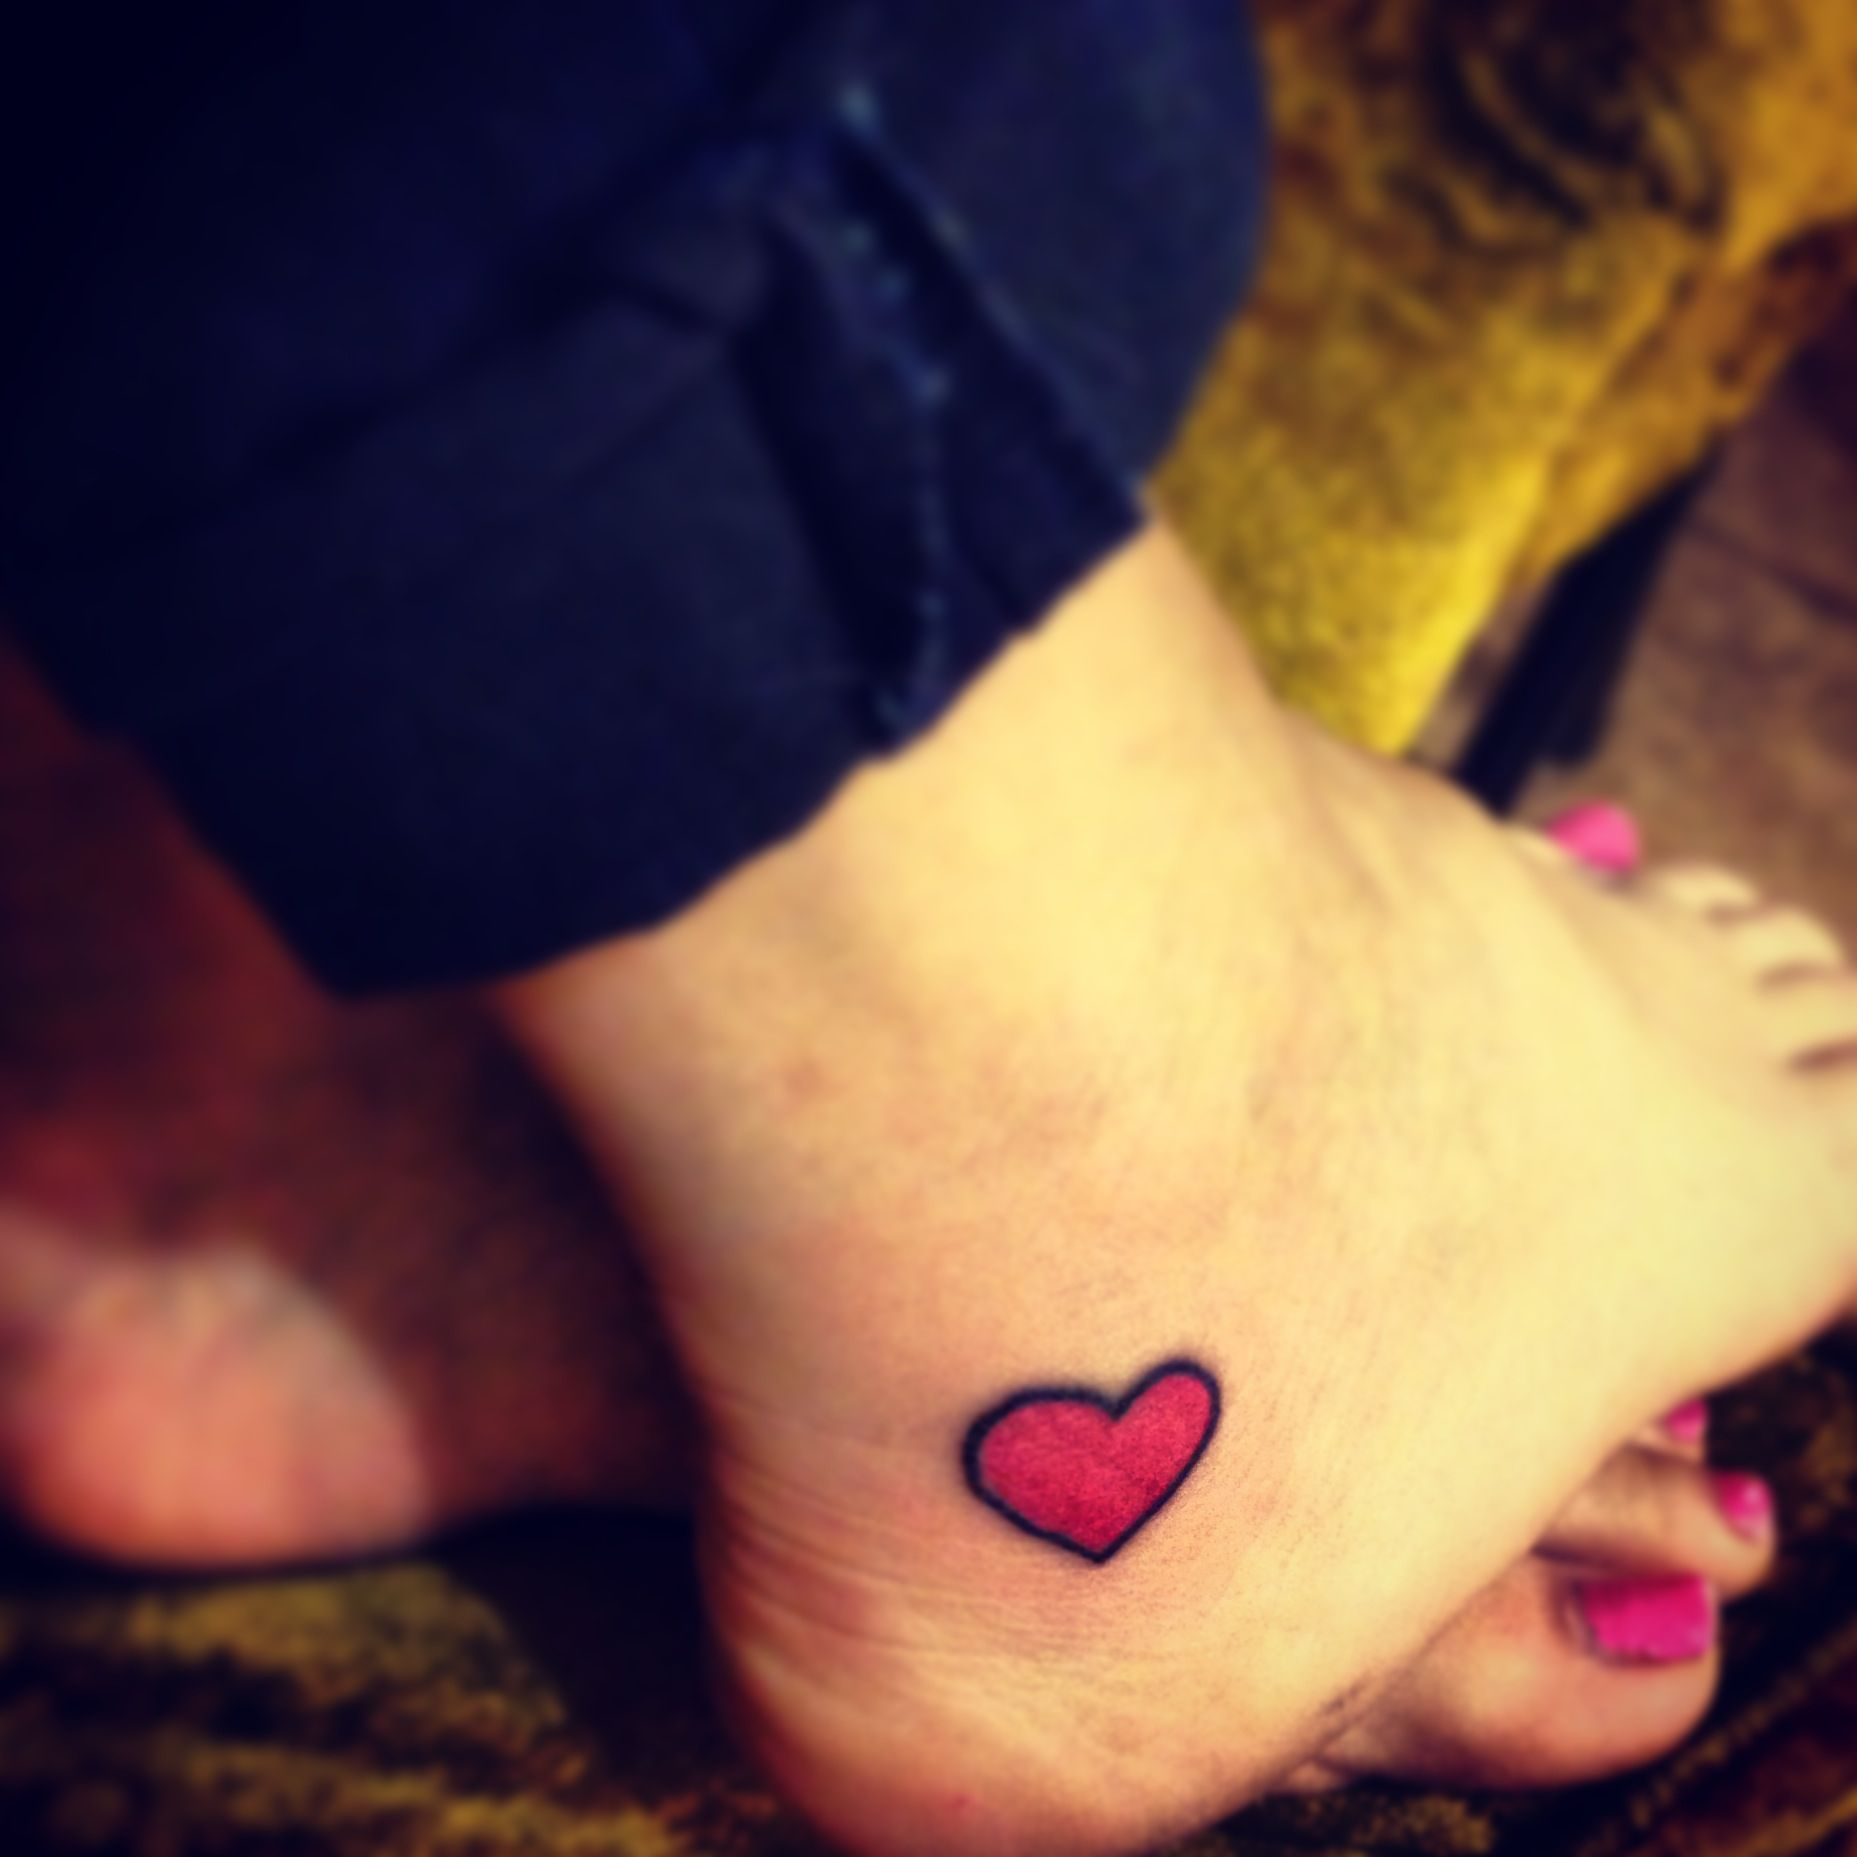 Pin By Kristin Ferreri On Inks Red Heart Tattoos Heart Tattoo Ankle Ankle Tattoo